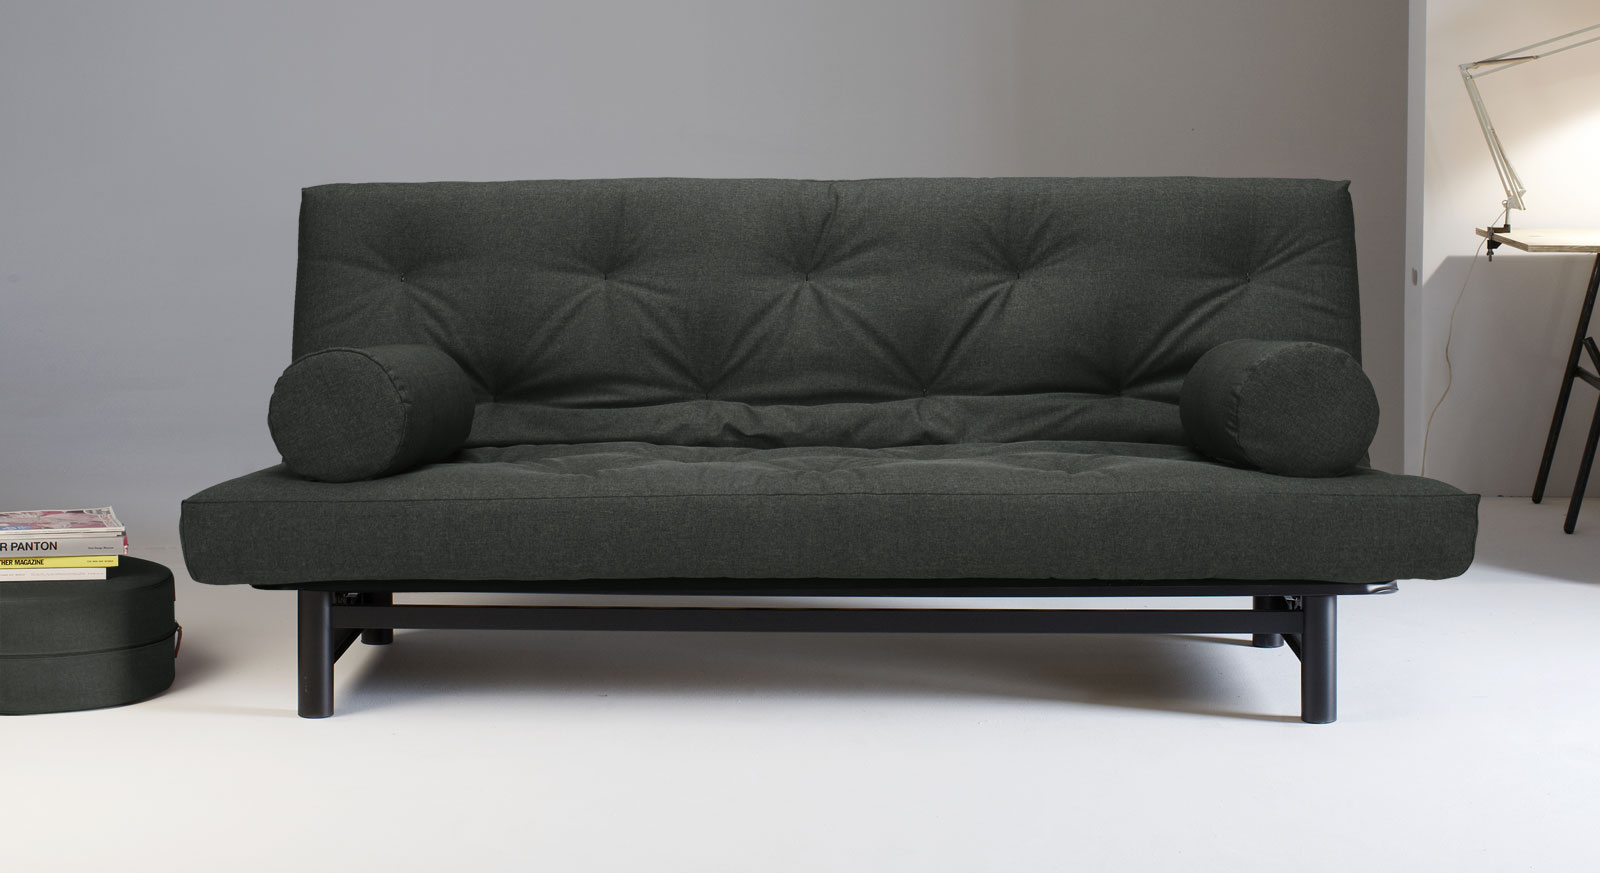 schlafcouch 140x200 affordable schlafsofa mit matratze with schlafcouch 140x200 interesting. Black Bedroom Furniture Sets. Home Design Ideas